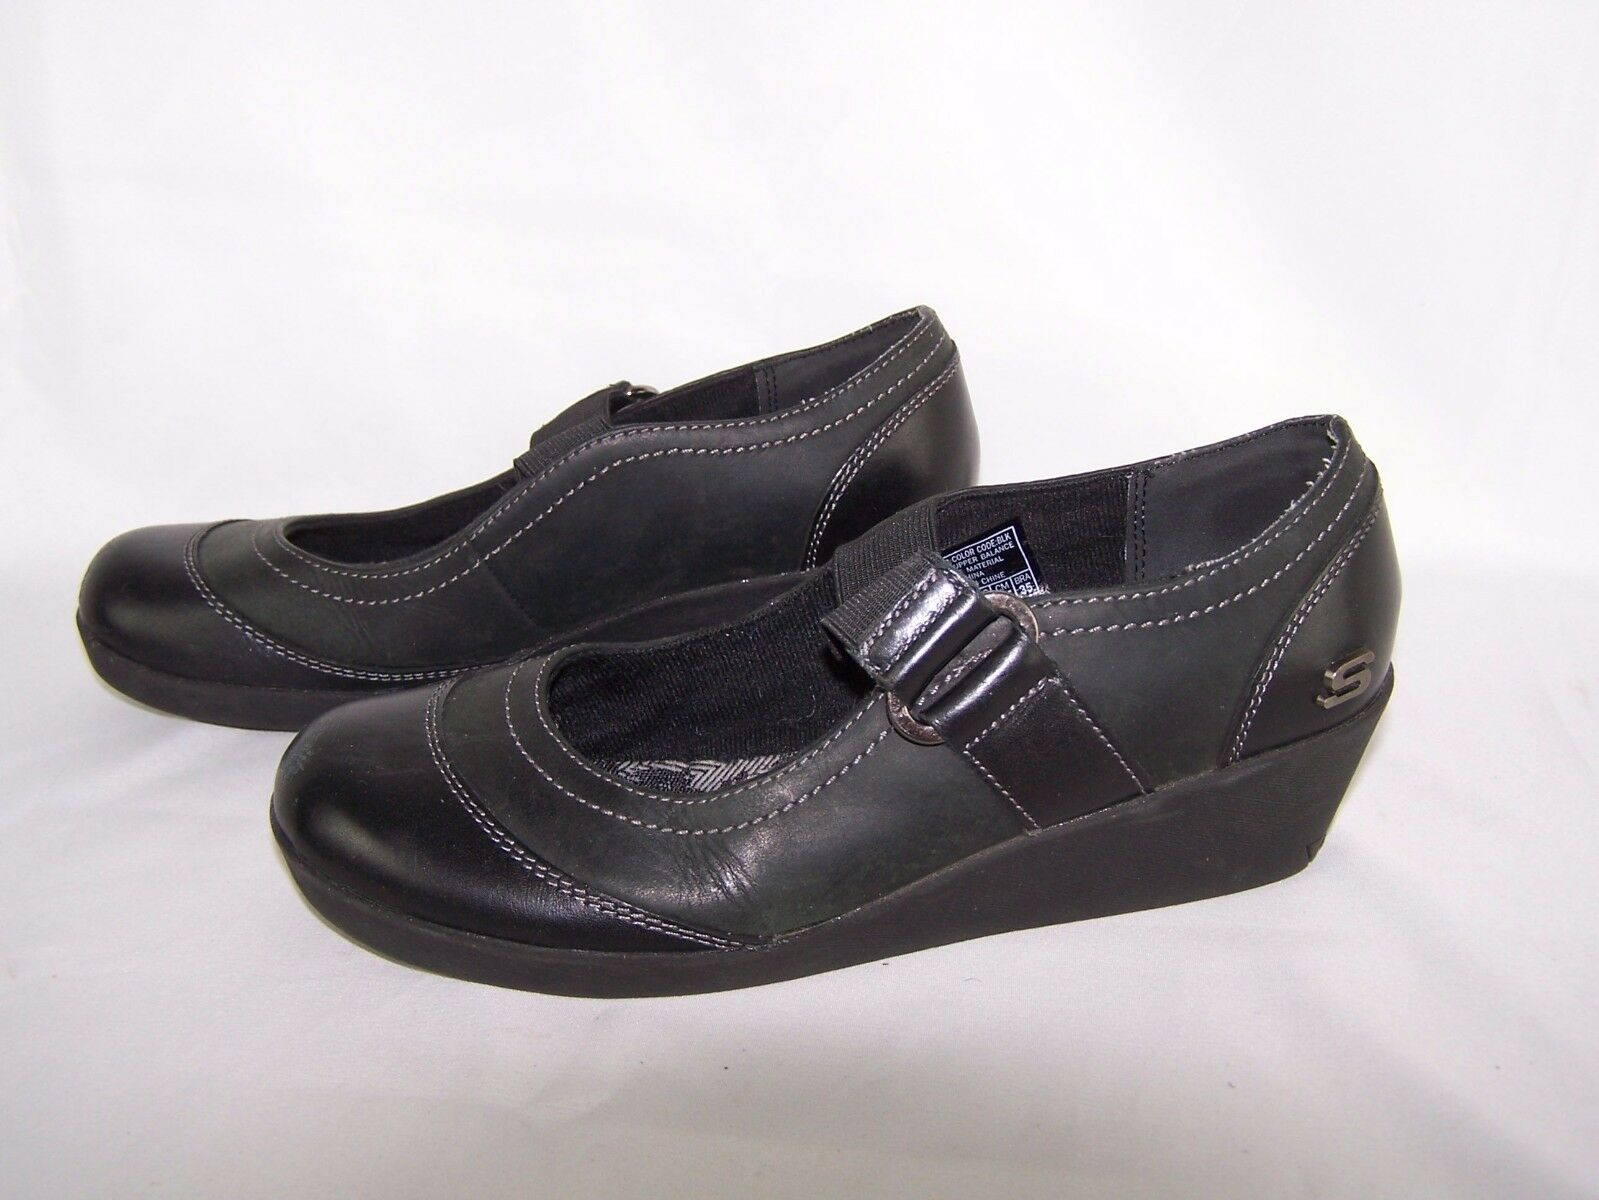 Women's Skechers Sport Slip On Leather Shoes Size 6.5